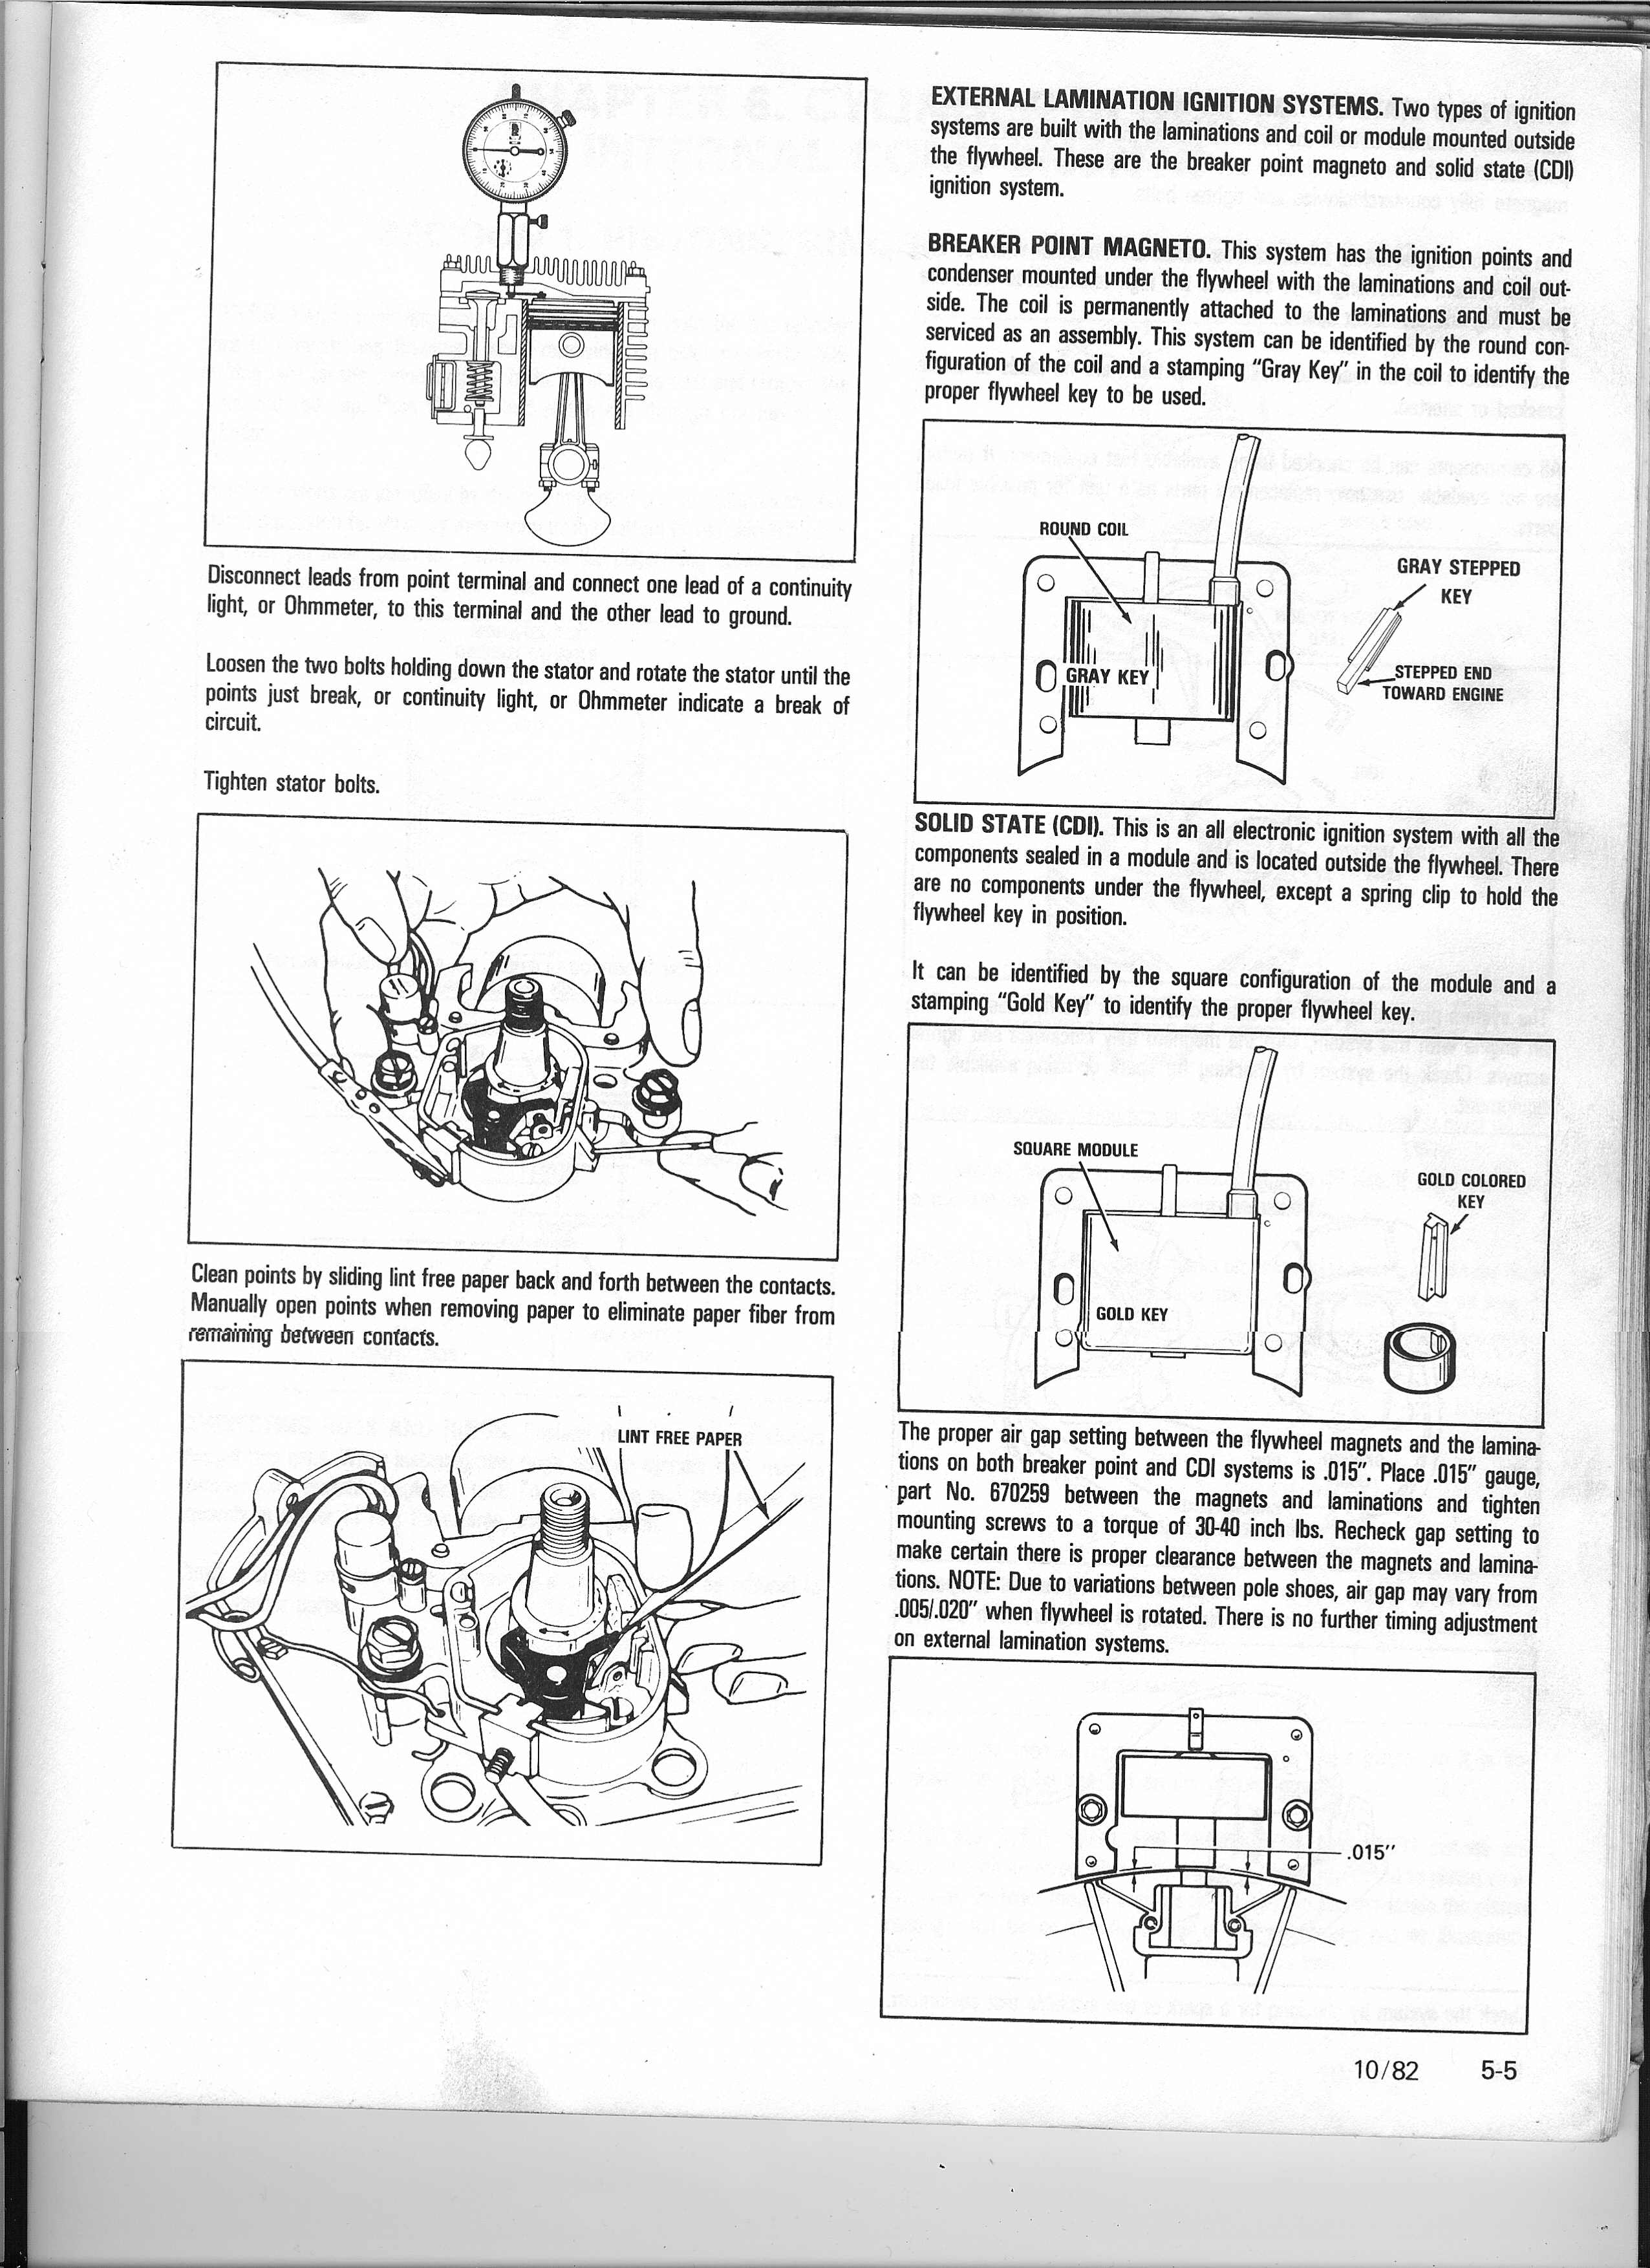 I Have An Old Tecumseh Motor That Was On A Paint Sprayer Type Honda Small Engine Points Ignition Coils Flywheel Diagram And Parts Graphic